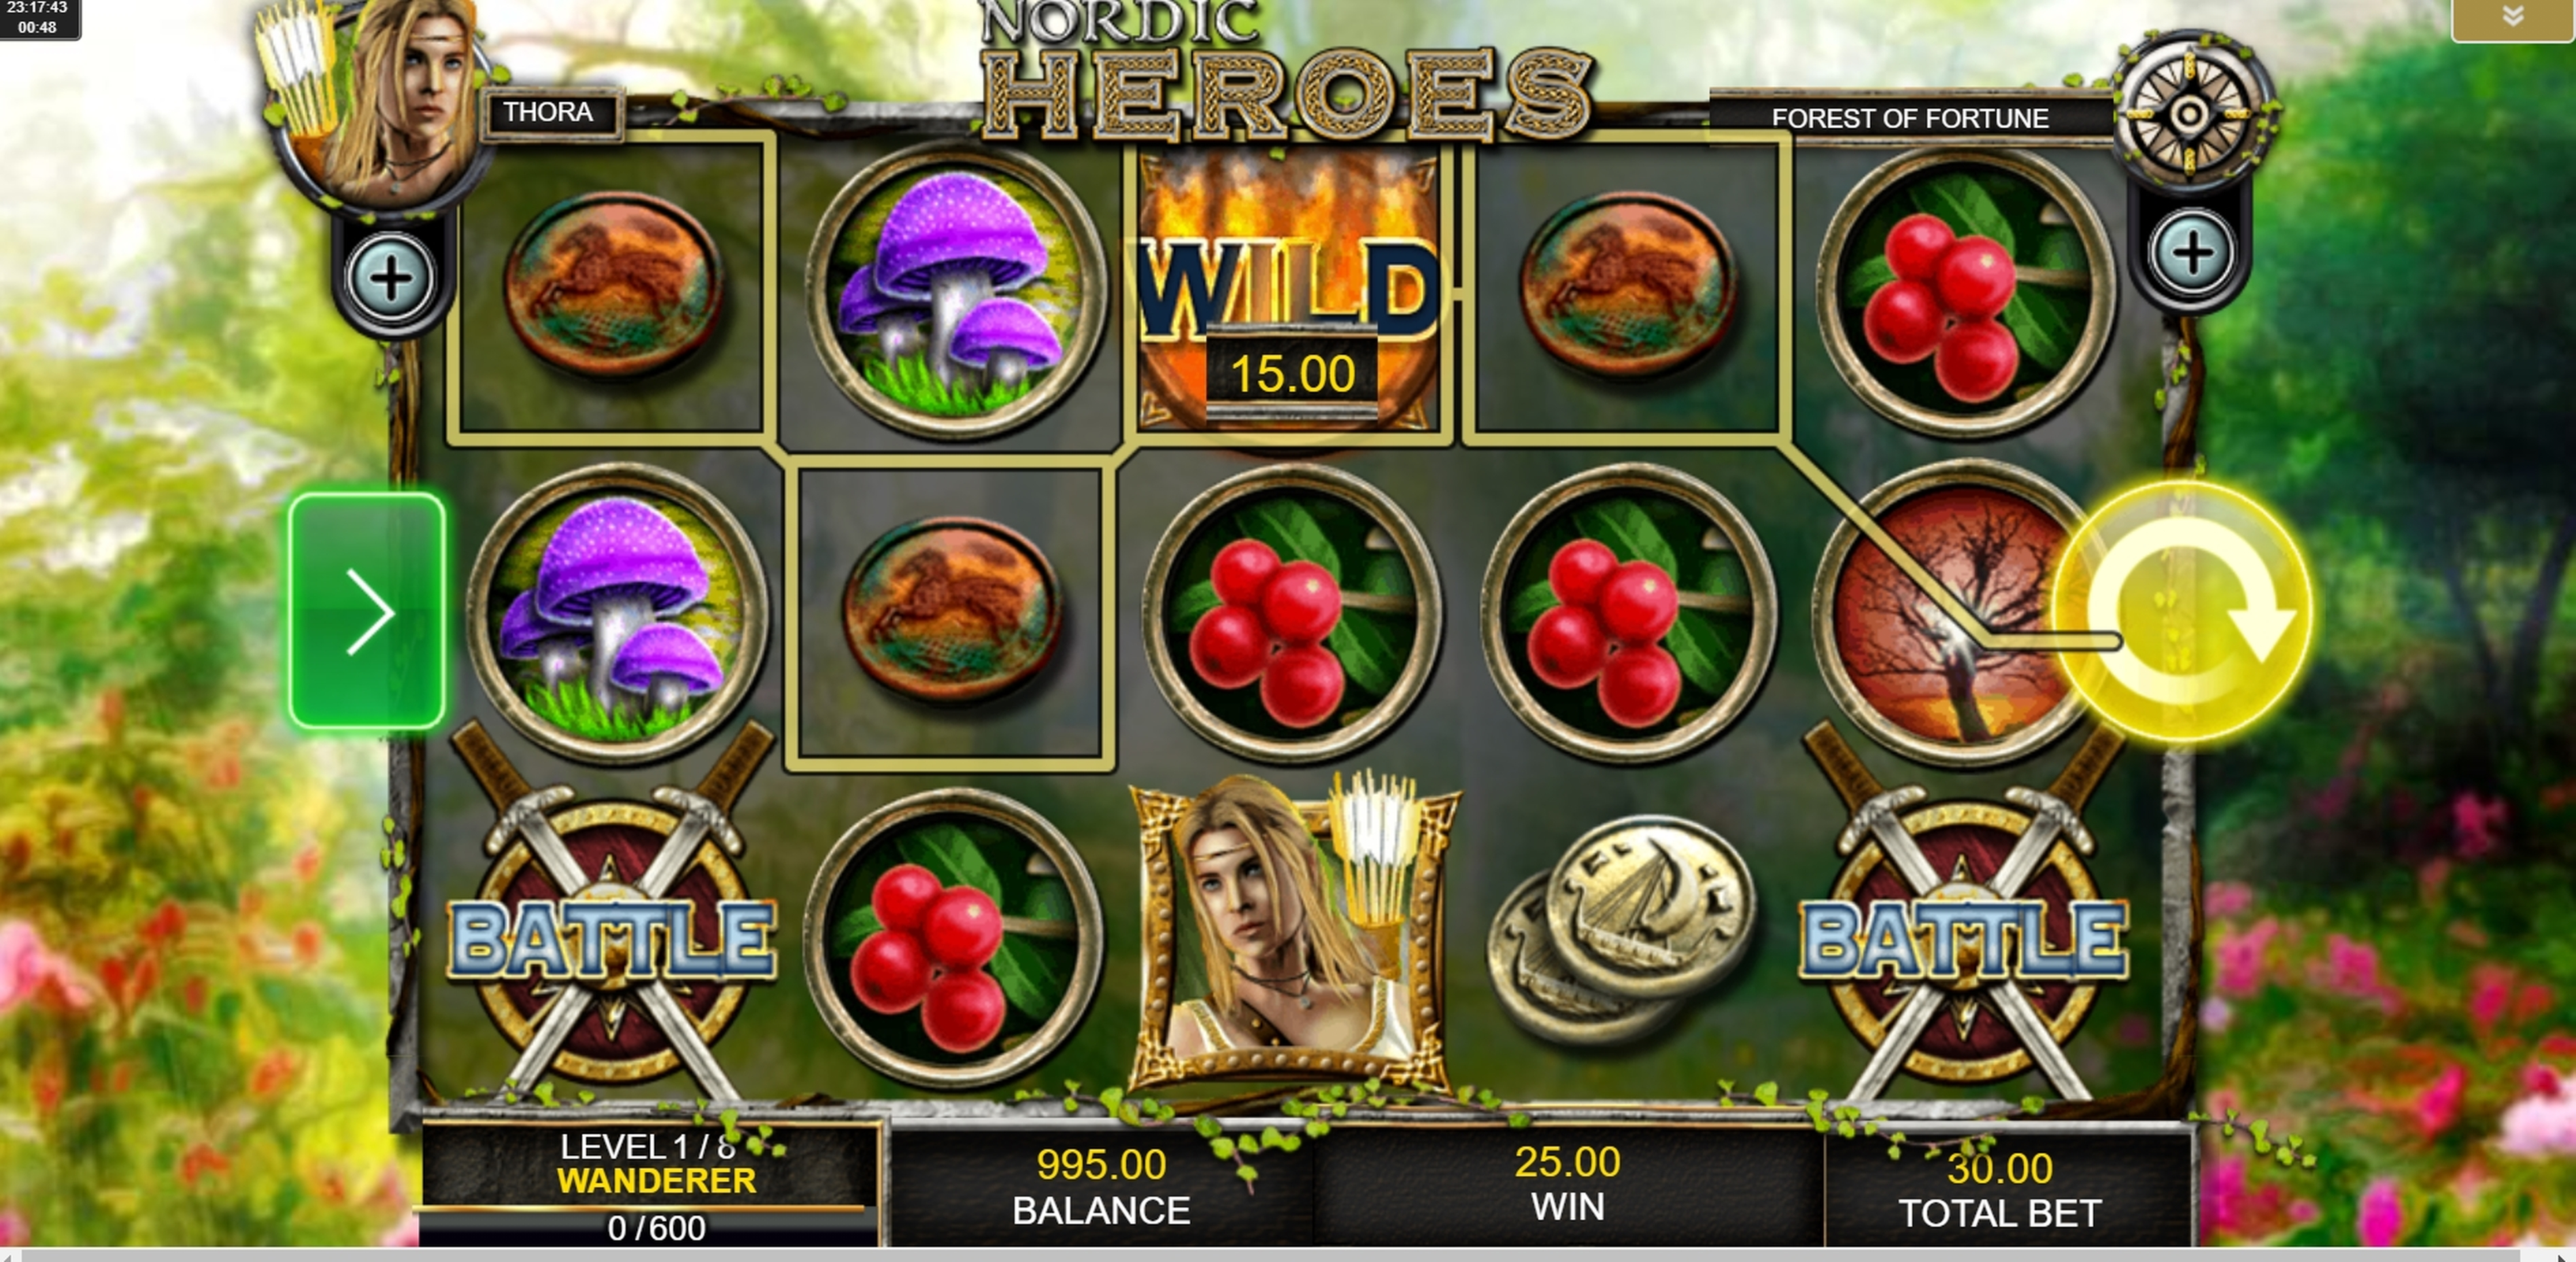 Win Money in Nordic Heroes Free Slot Game by IGT